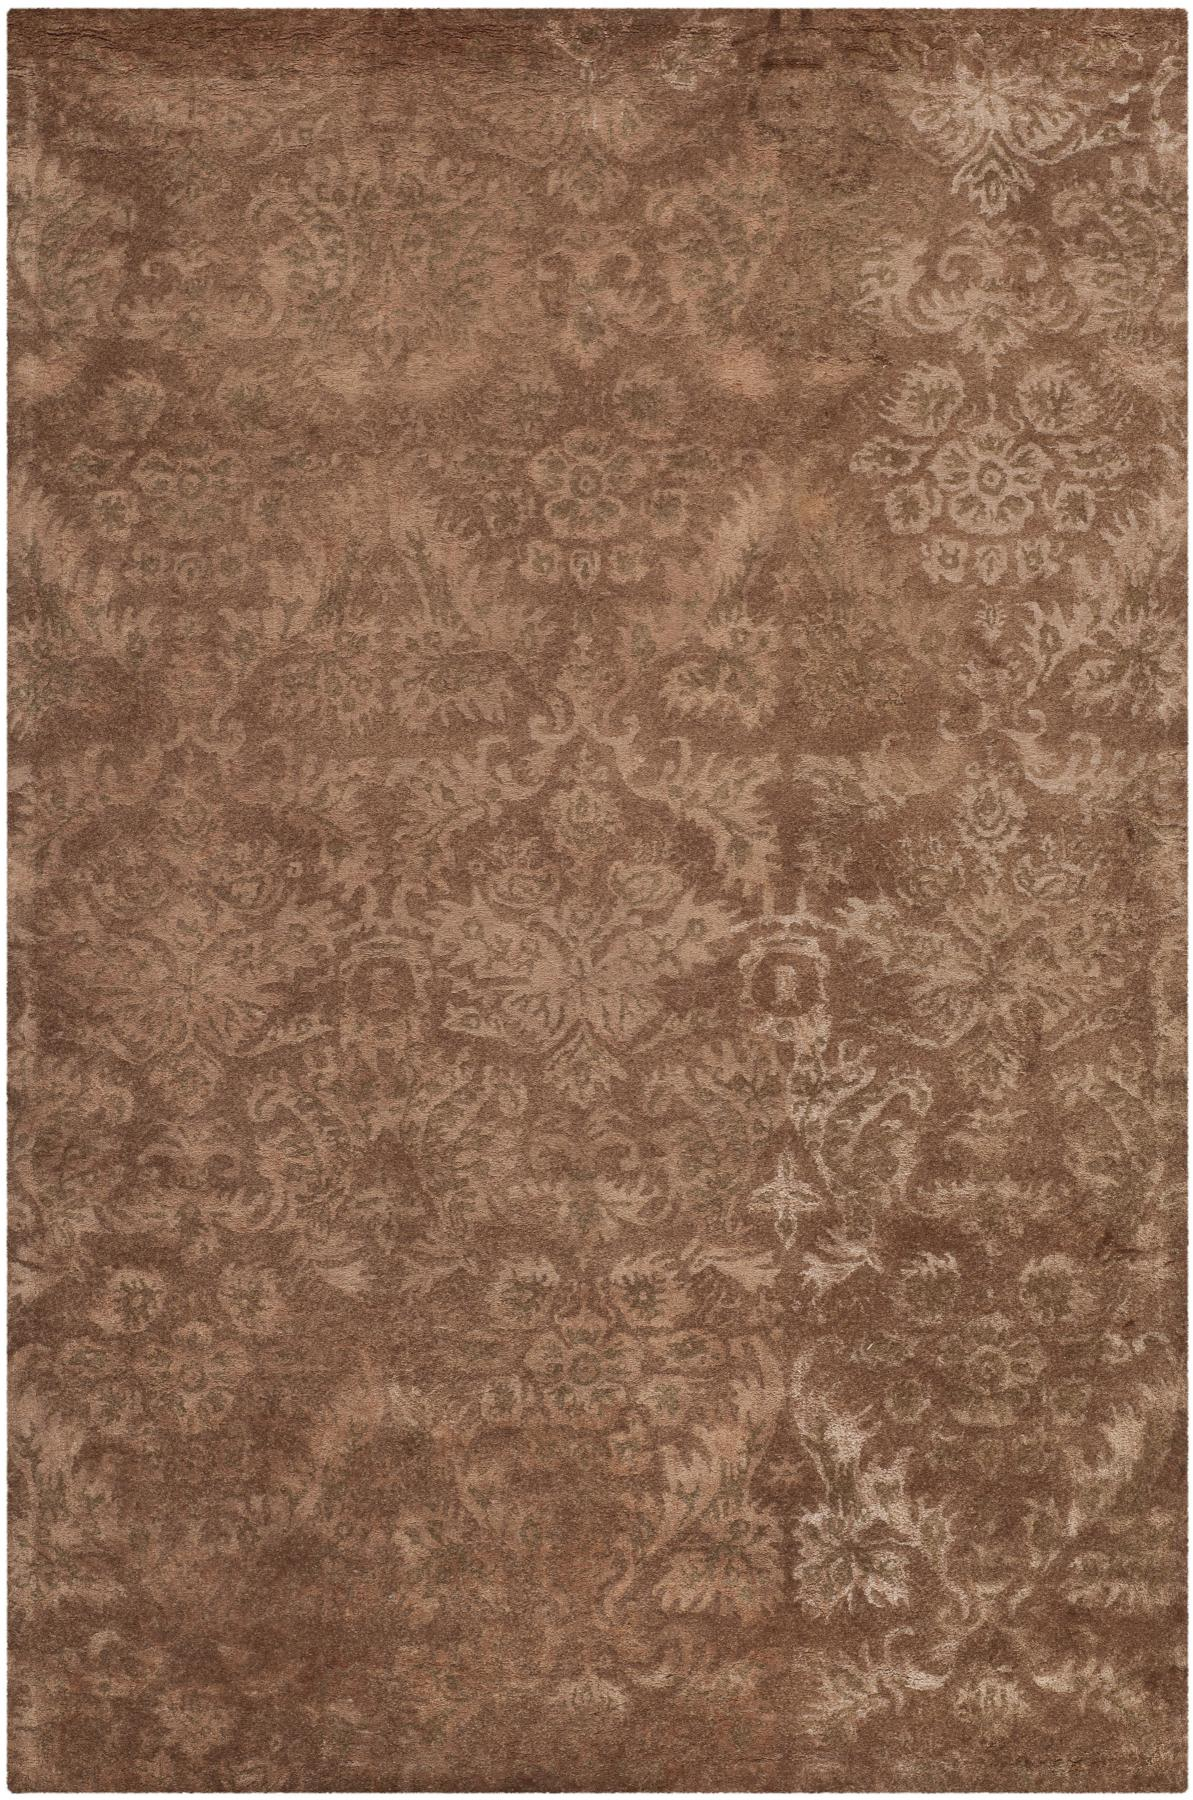 Brown Damask Rug Rugs Ideas